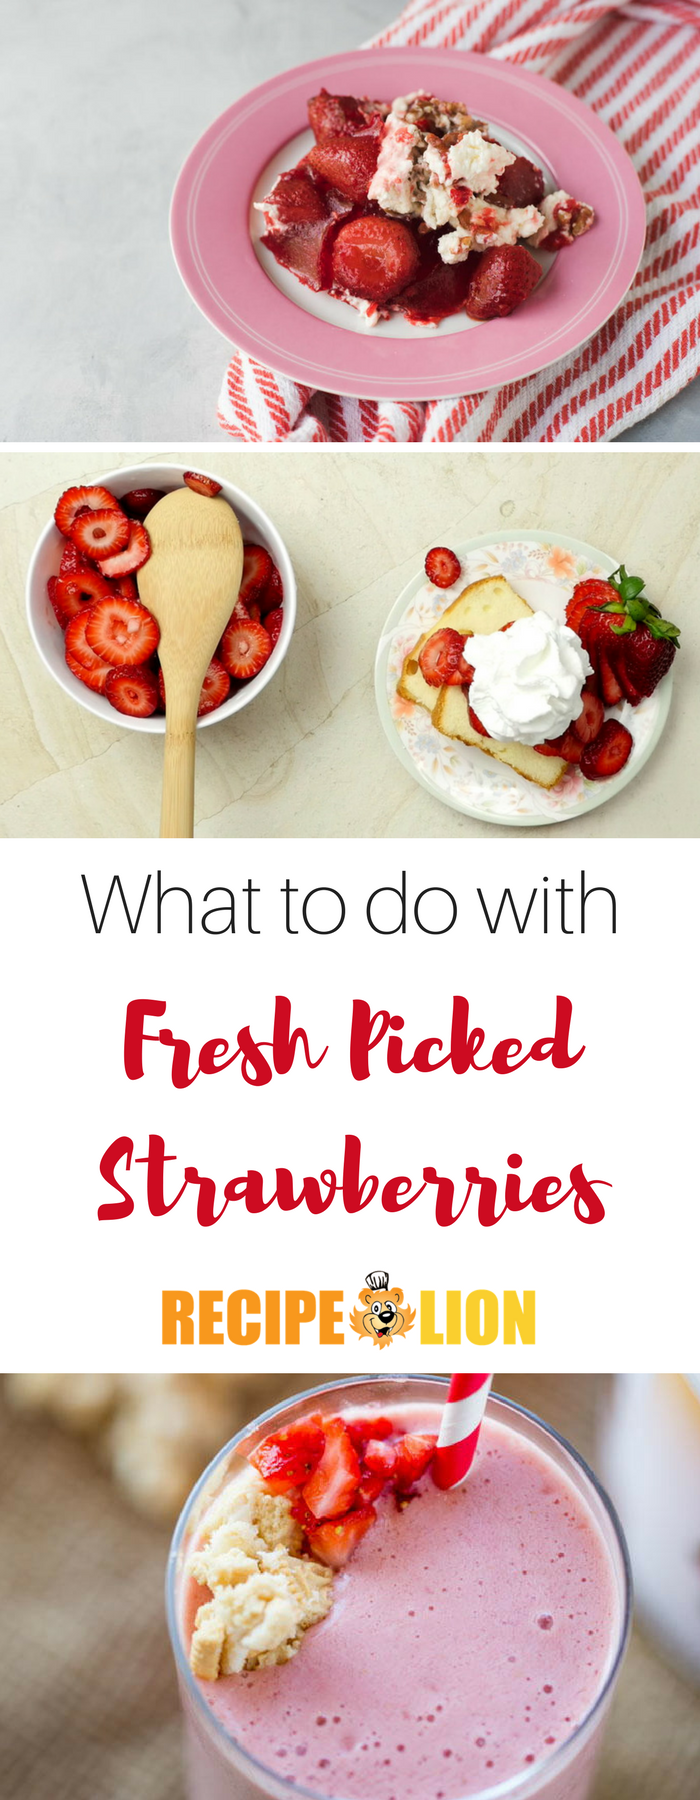 what to do with fresh picked strawberries